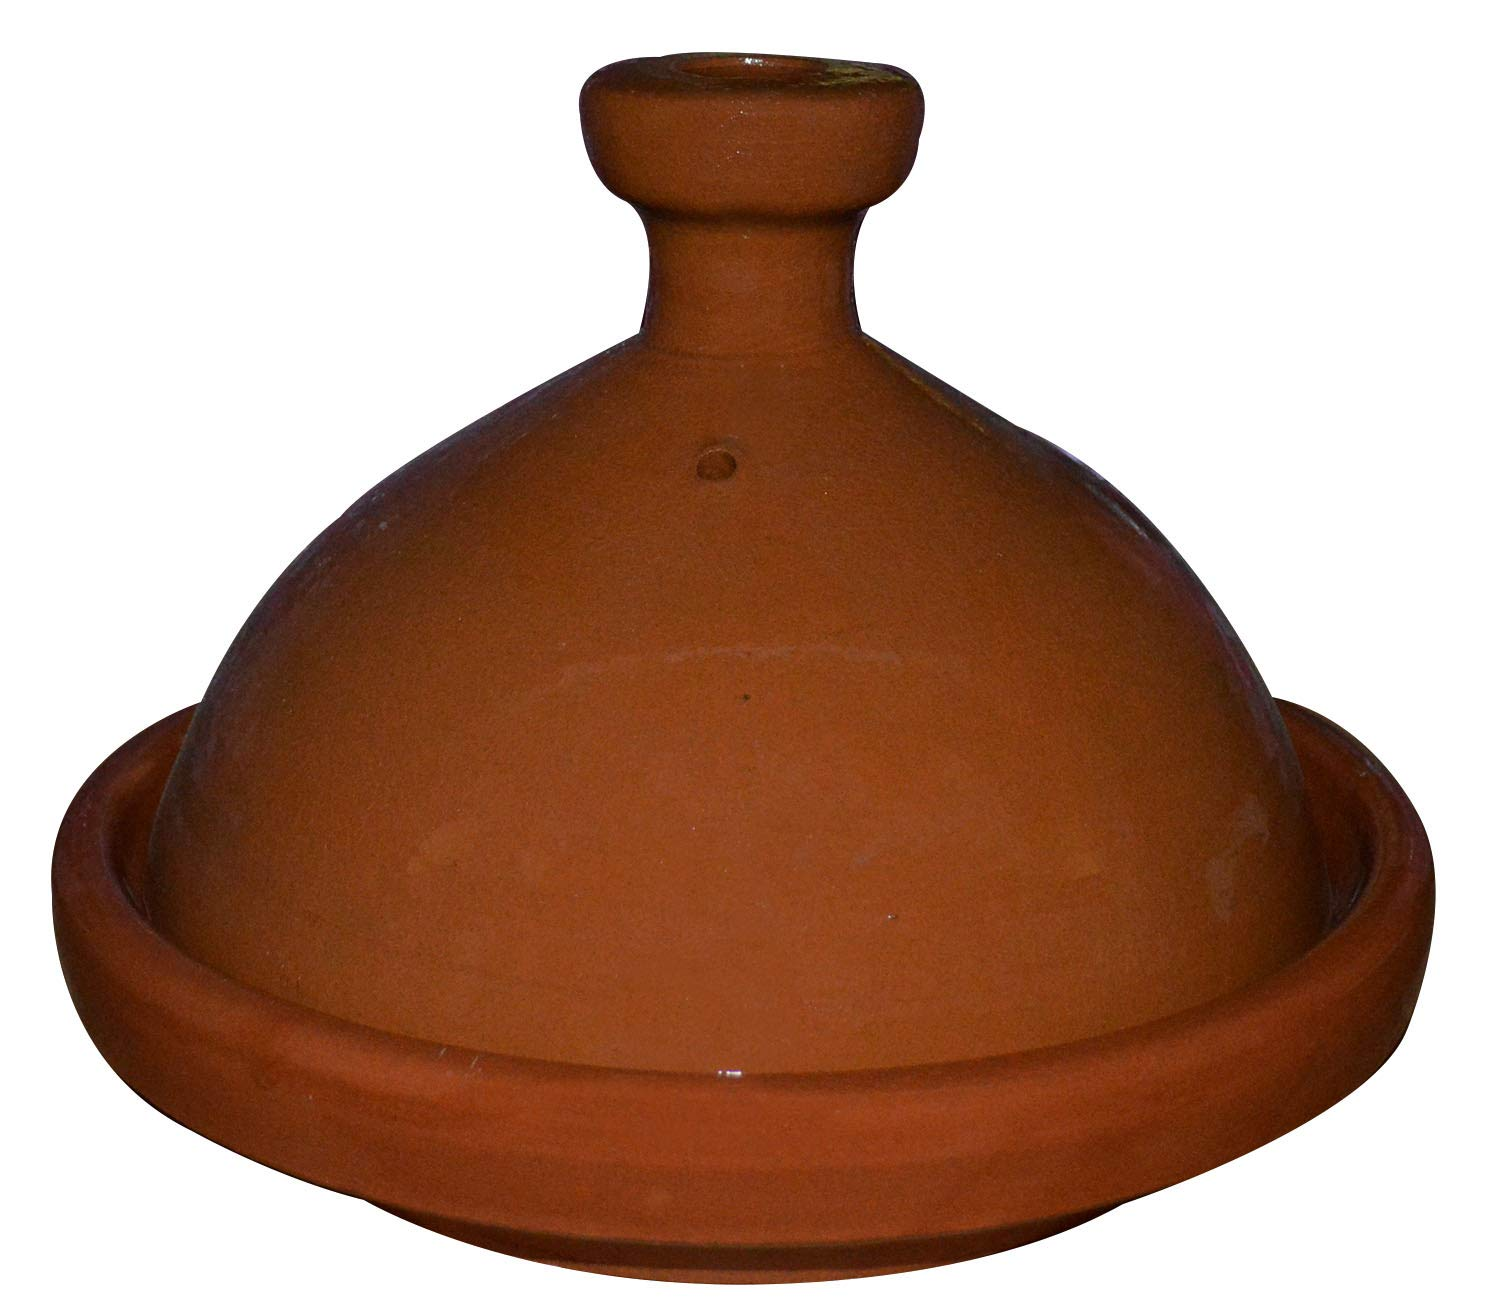 Moroccan Medium Simple Cooking Tagine Lead Free by Cooking Tagines